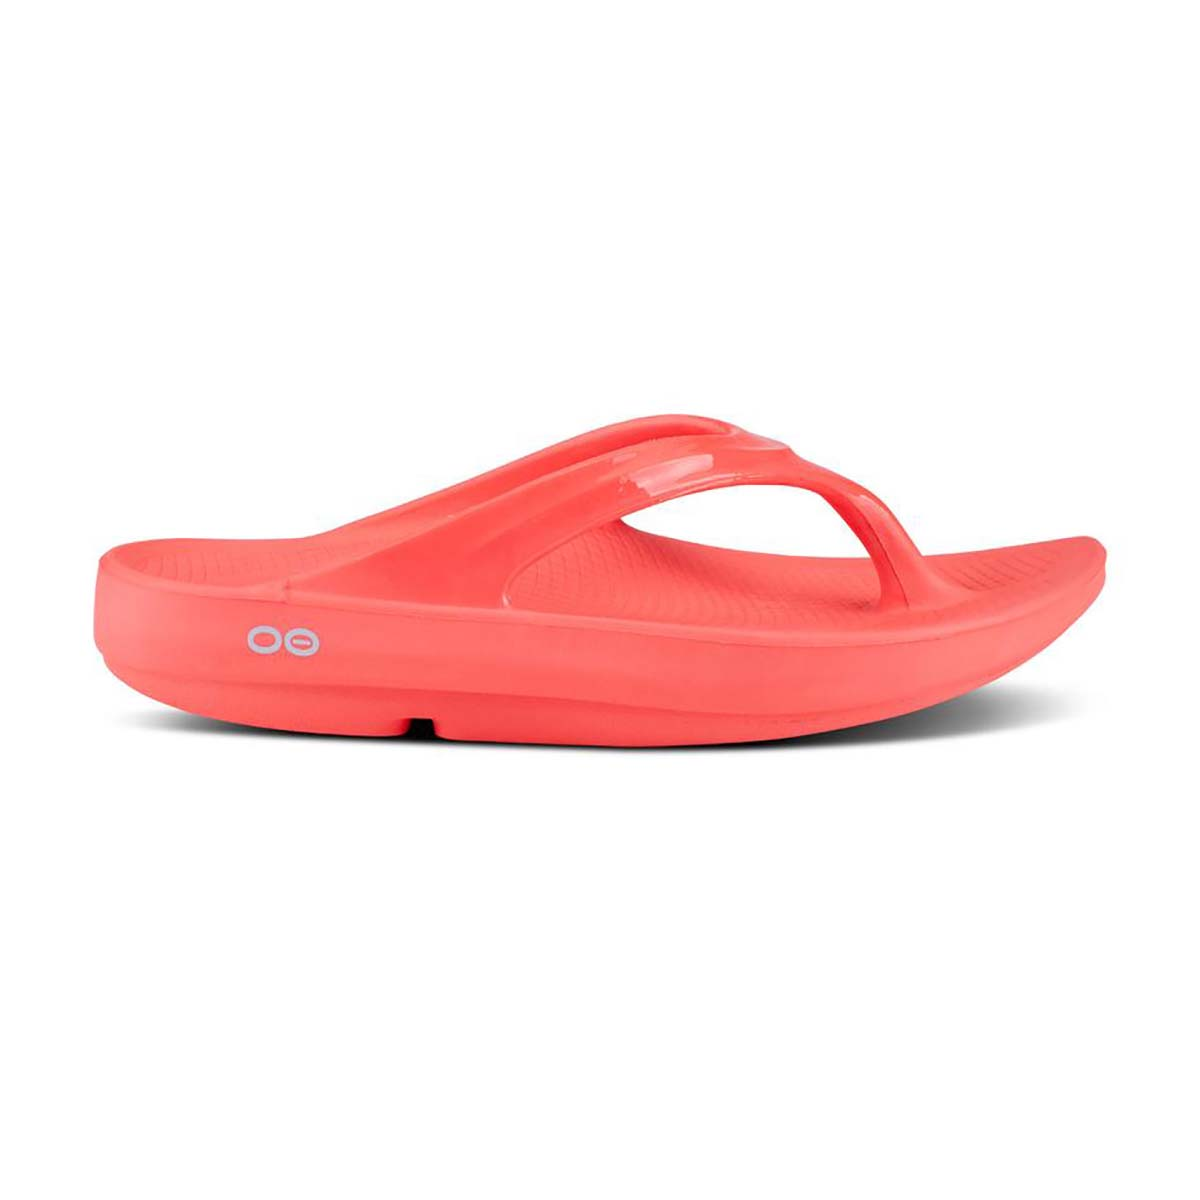 Women's Oofos OOlala Thong Recovery Sandal - Color: Coral - Size: 6 - Width: Regular, Coral, large, image 2